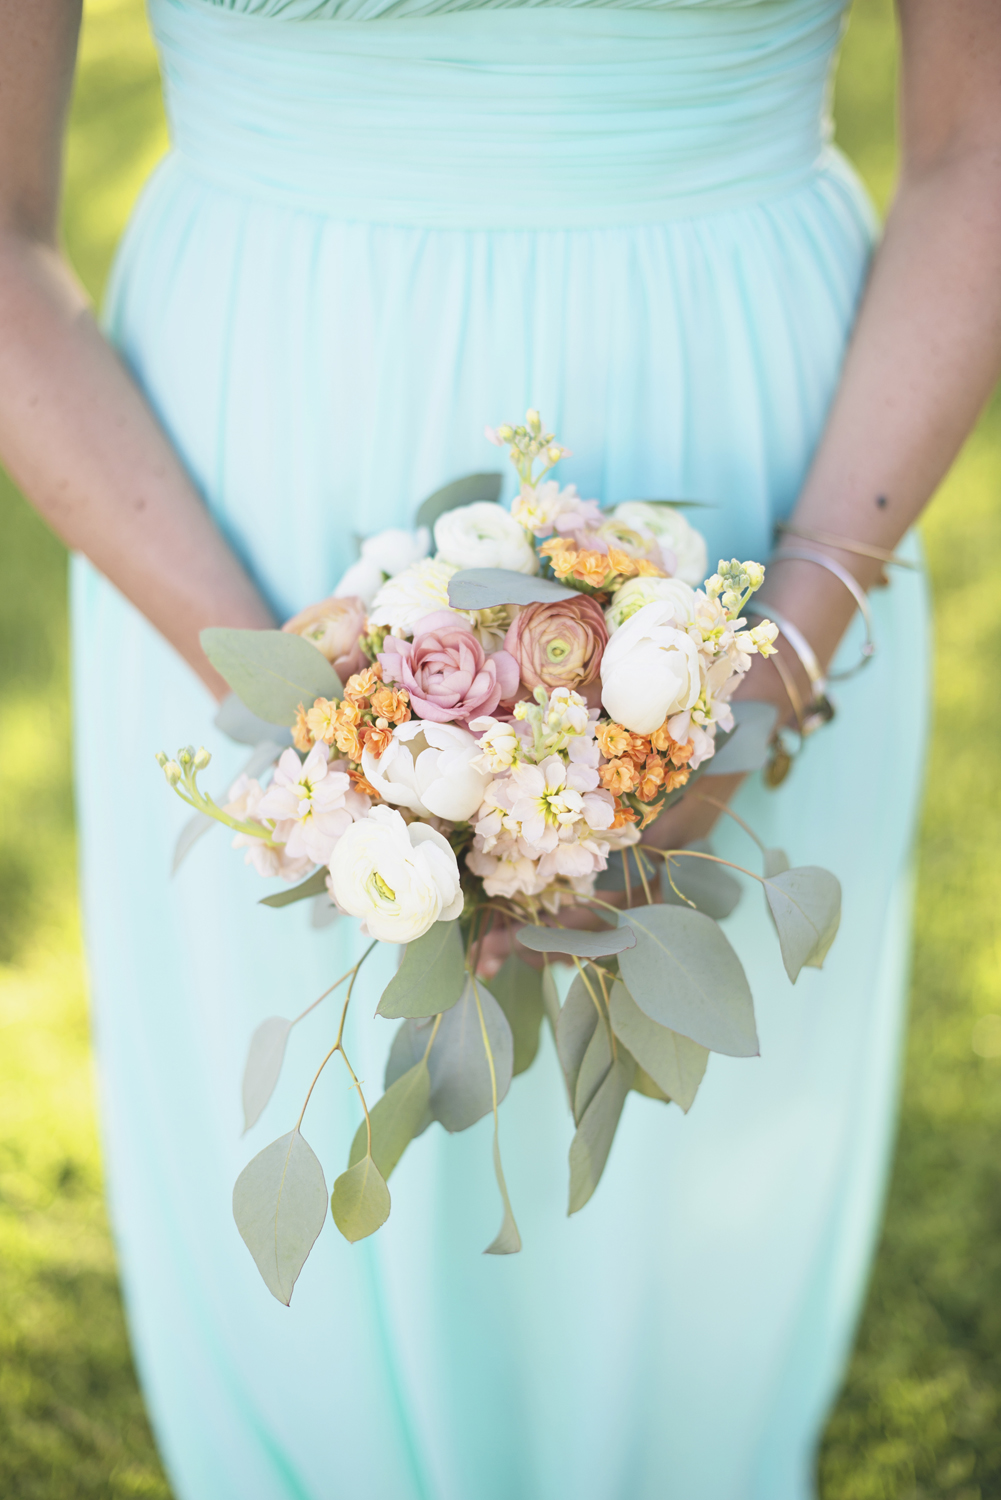 Inn at Warner Hall Wedding P  hotography | Blush, tangerine, and white bridal bouquet with eucalyptus leaves